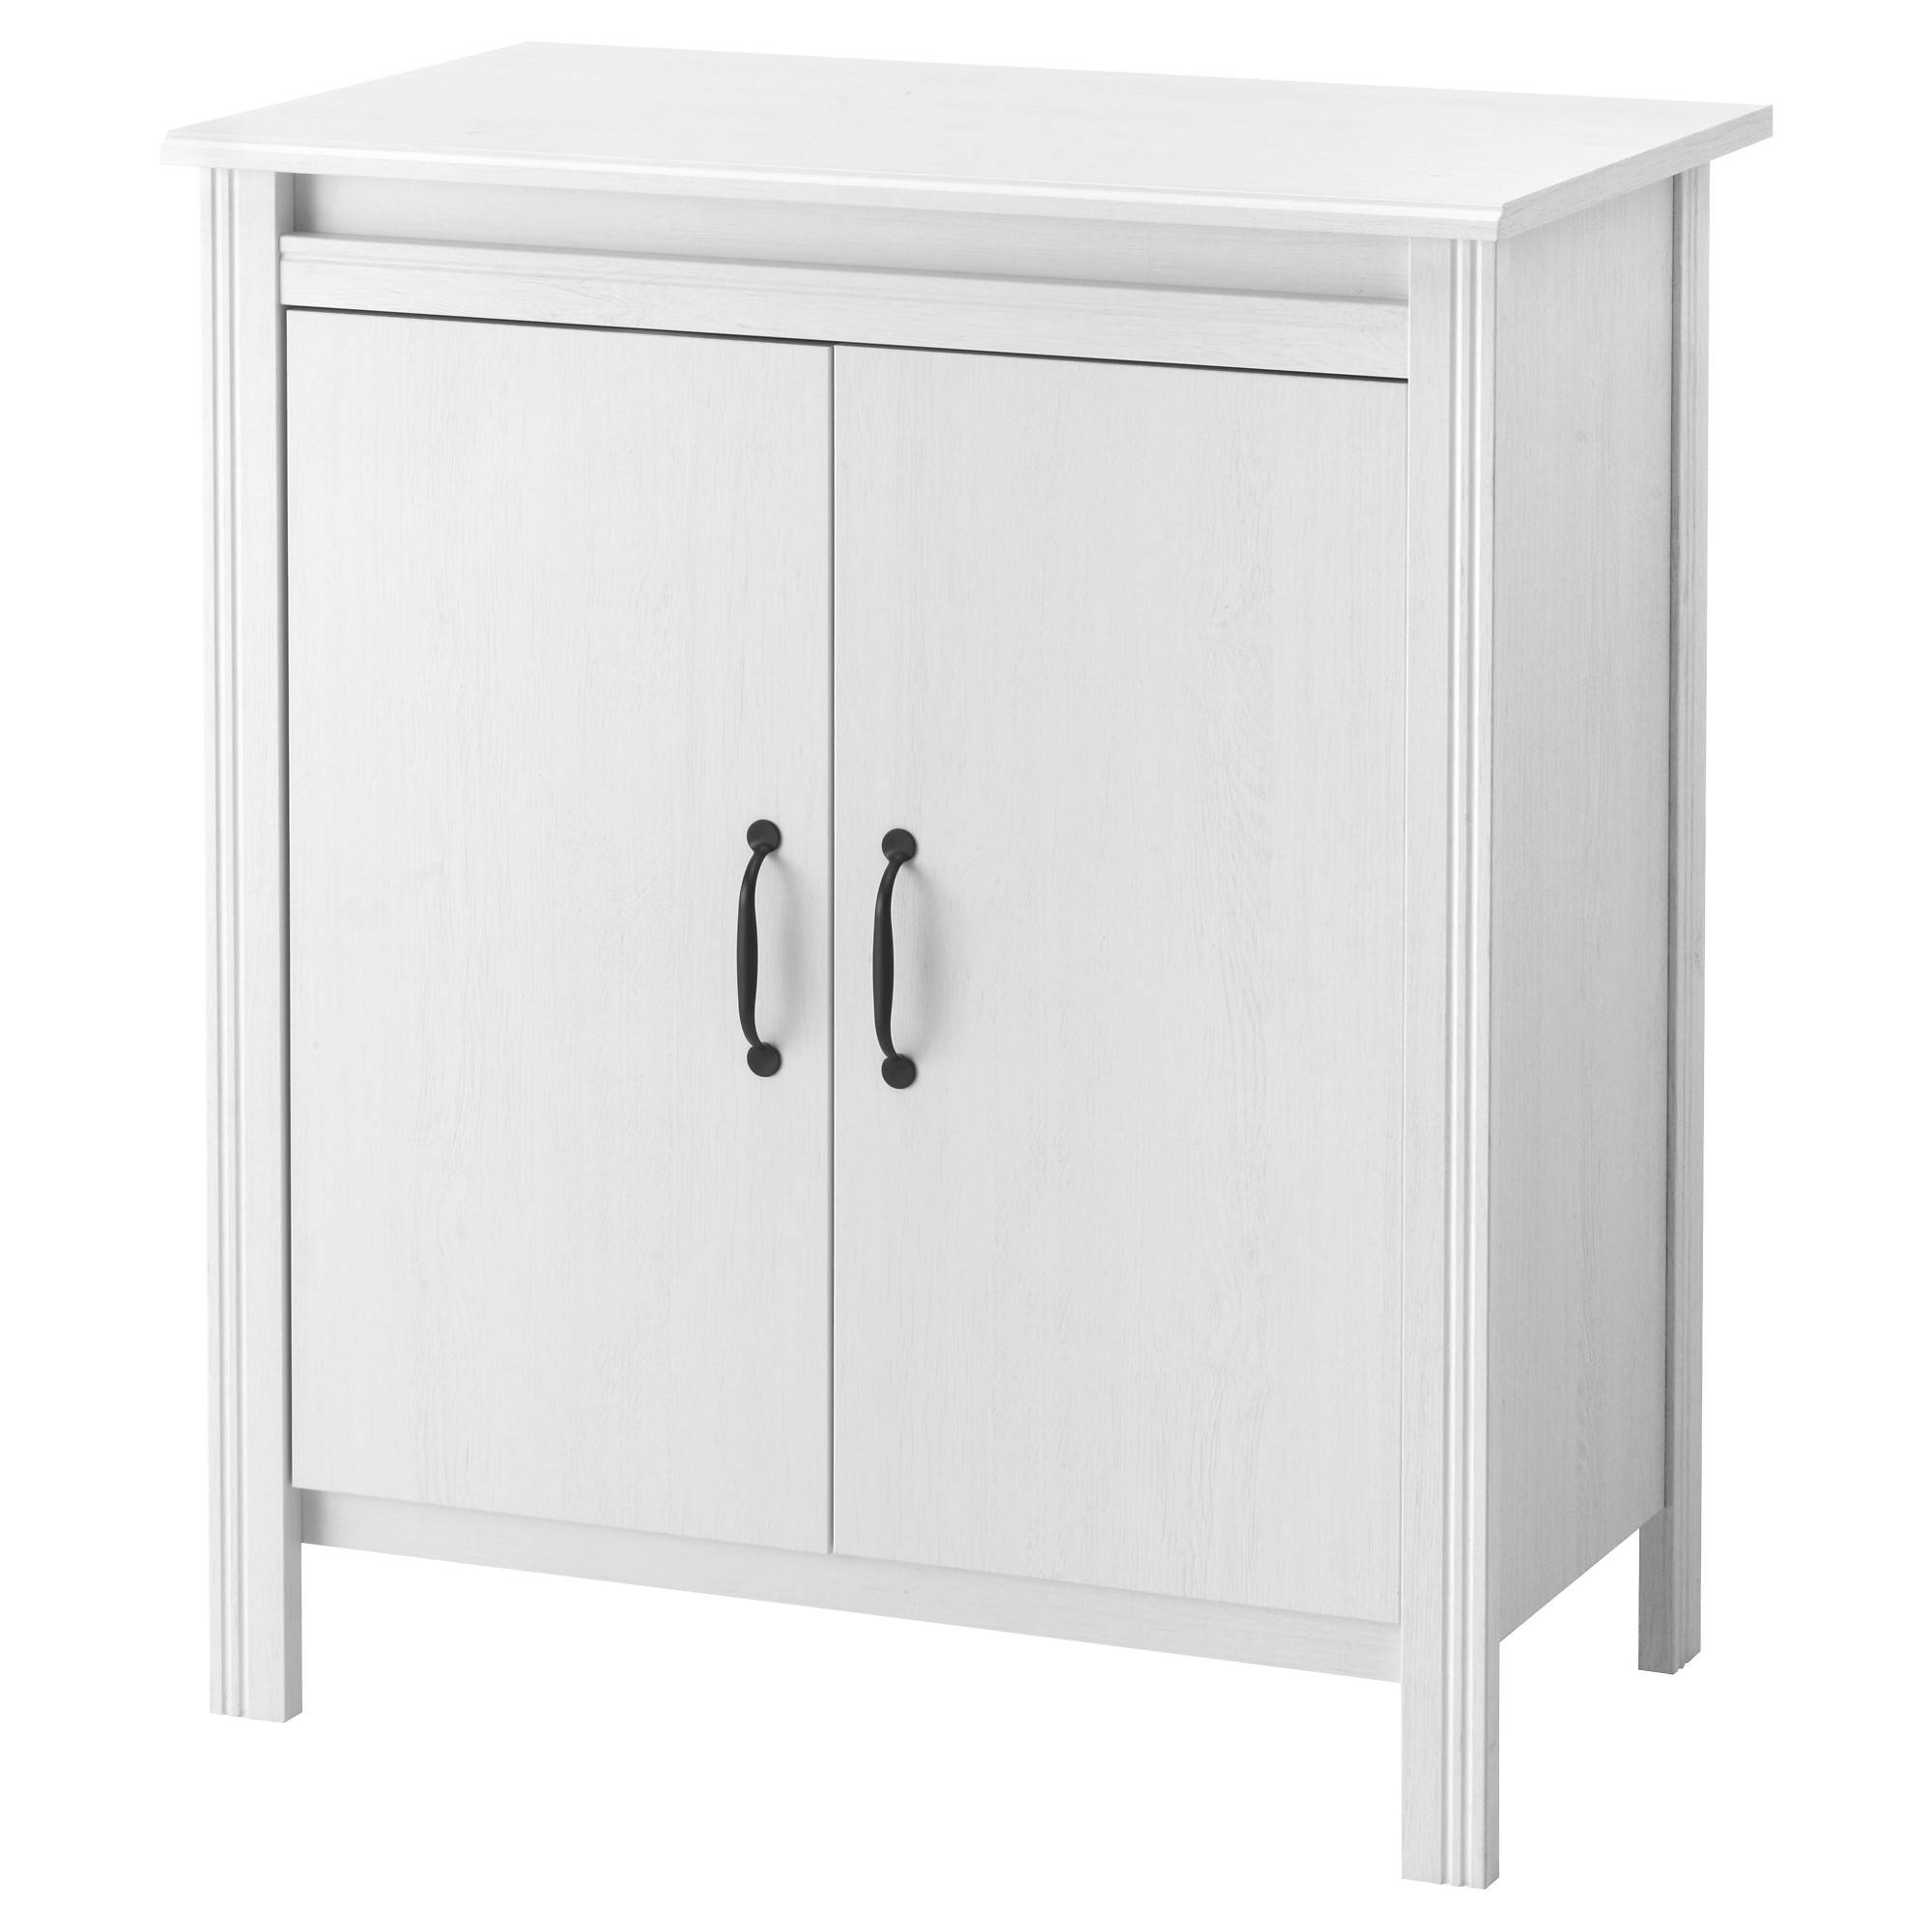 Brusali Cabinet With Doors White 80X93 Cm - Ikea within White Sideboard Cabinets (Image 6 of 30)